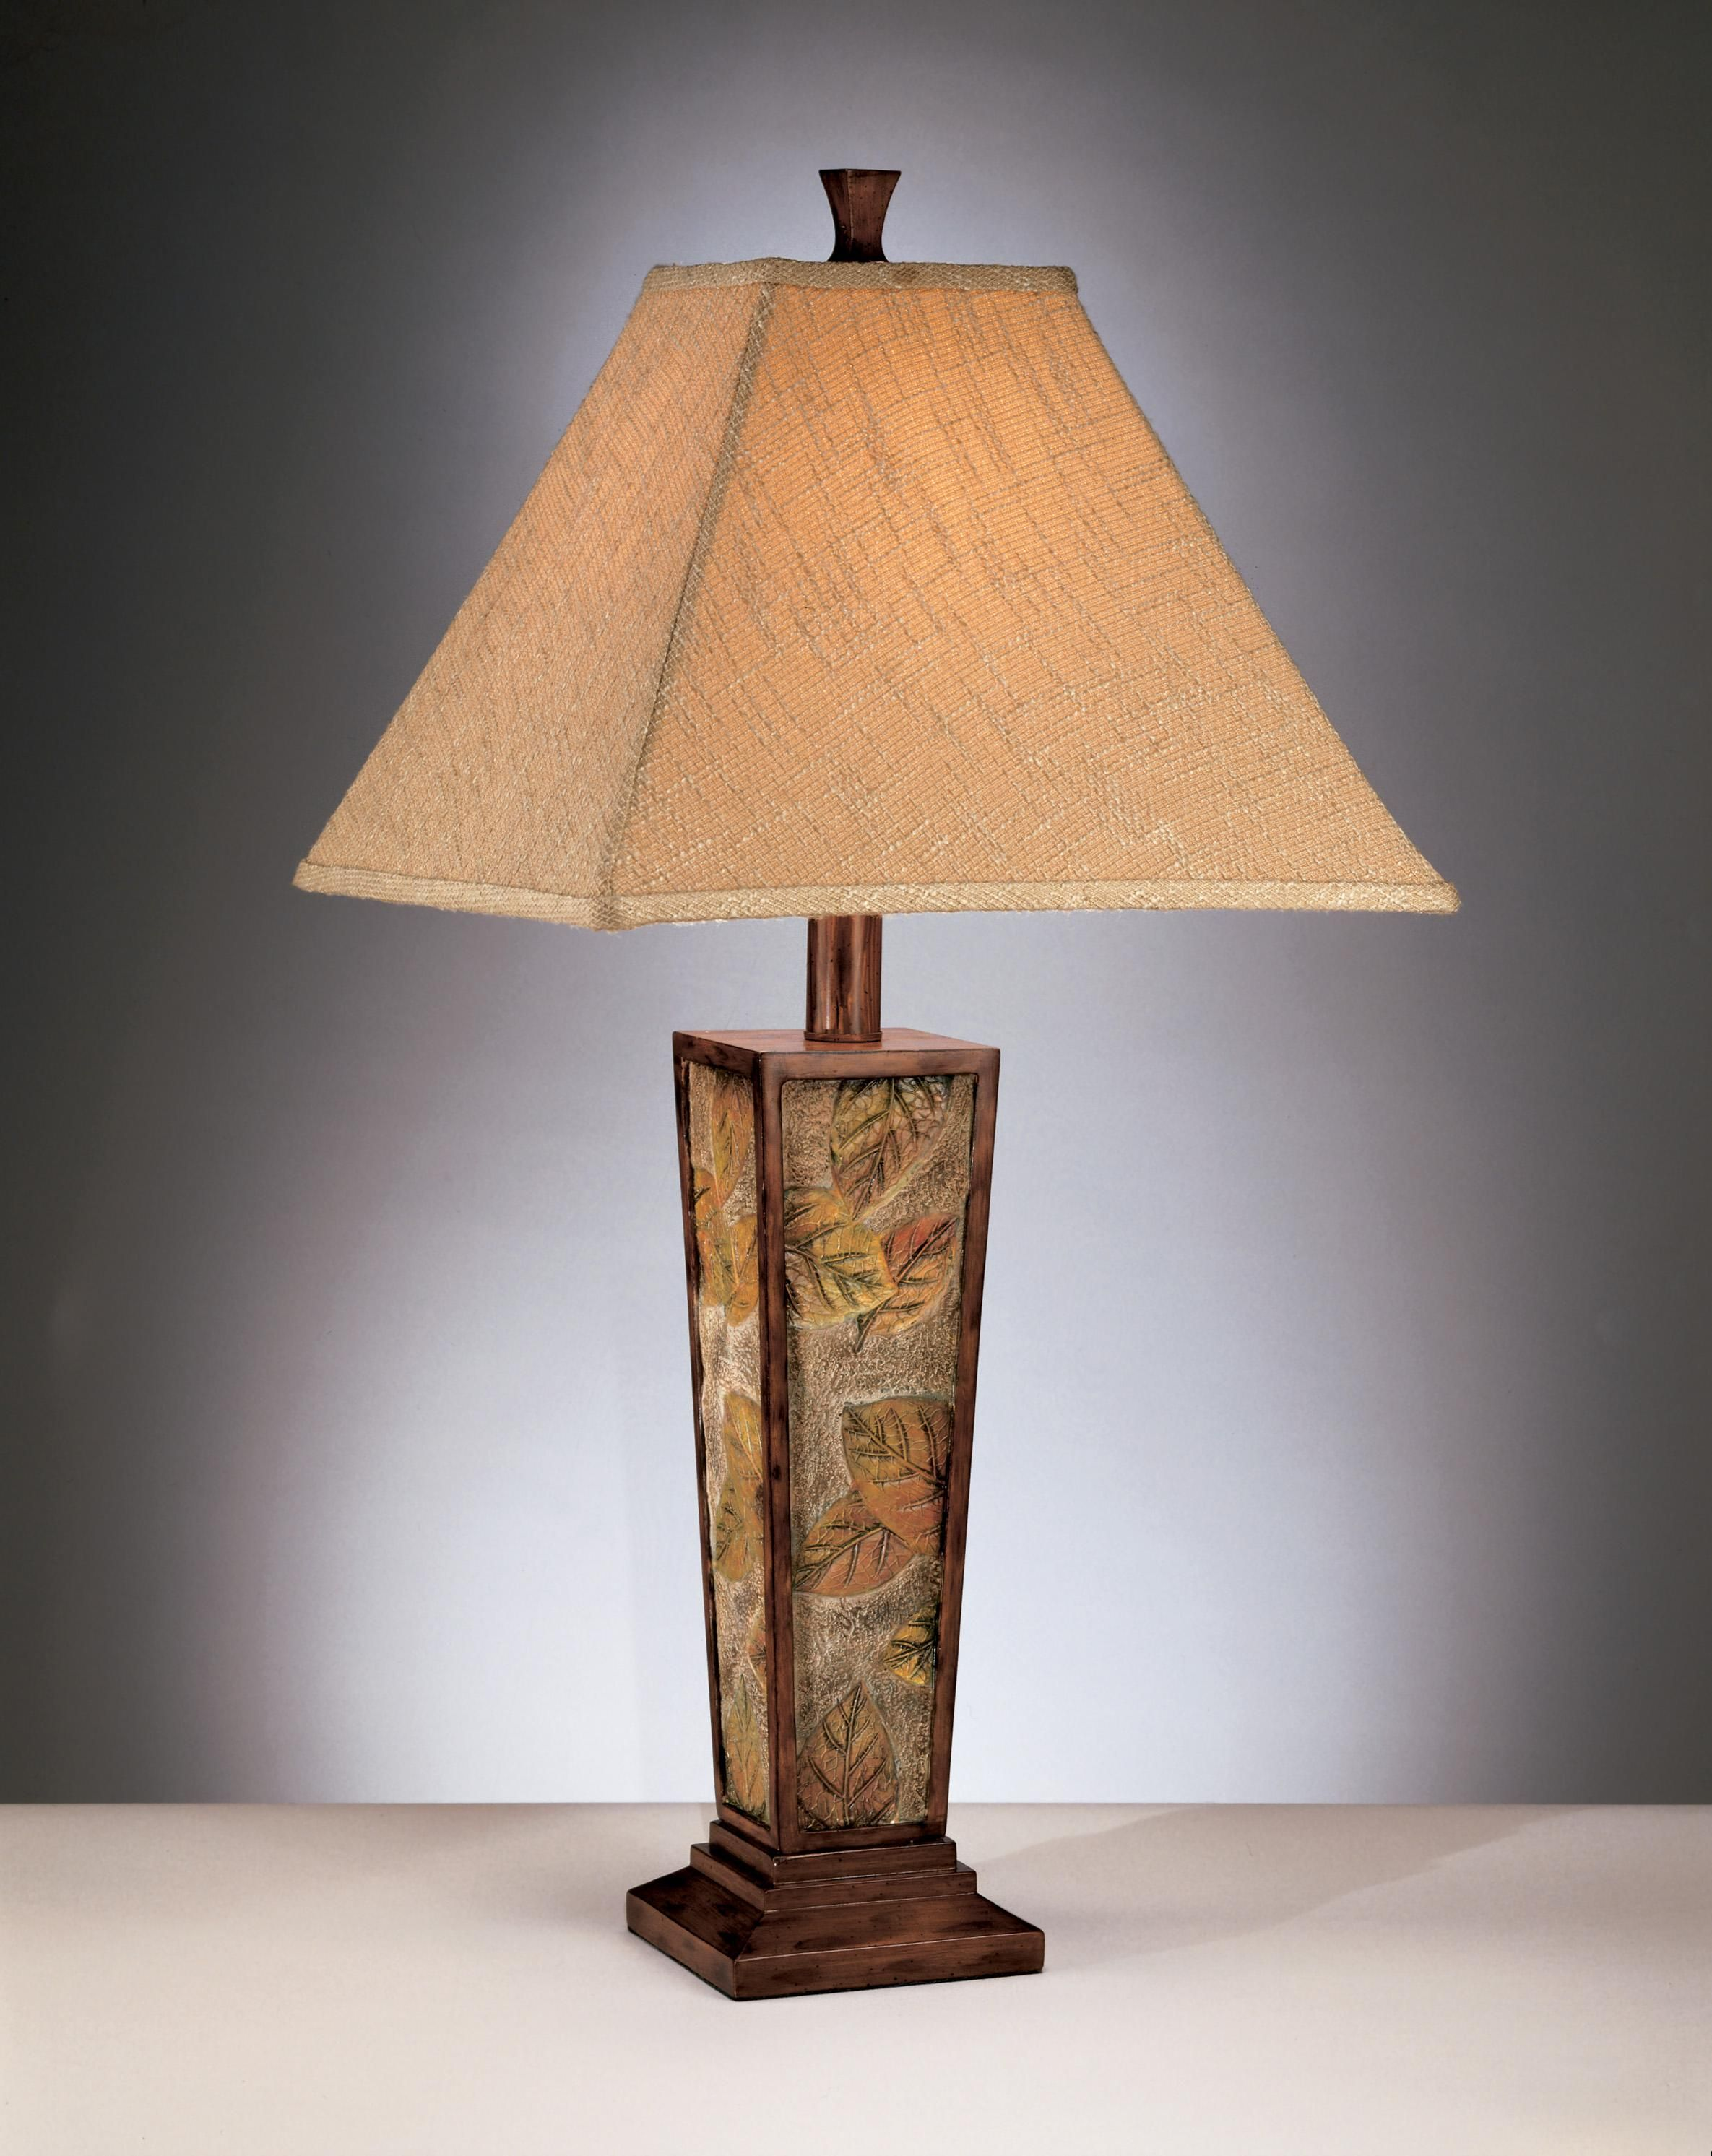 Lamps Rustic Eloise Table Lamp by Signature Design by